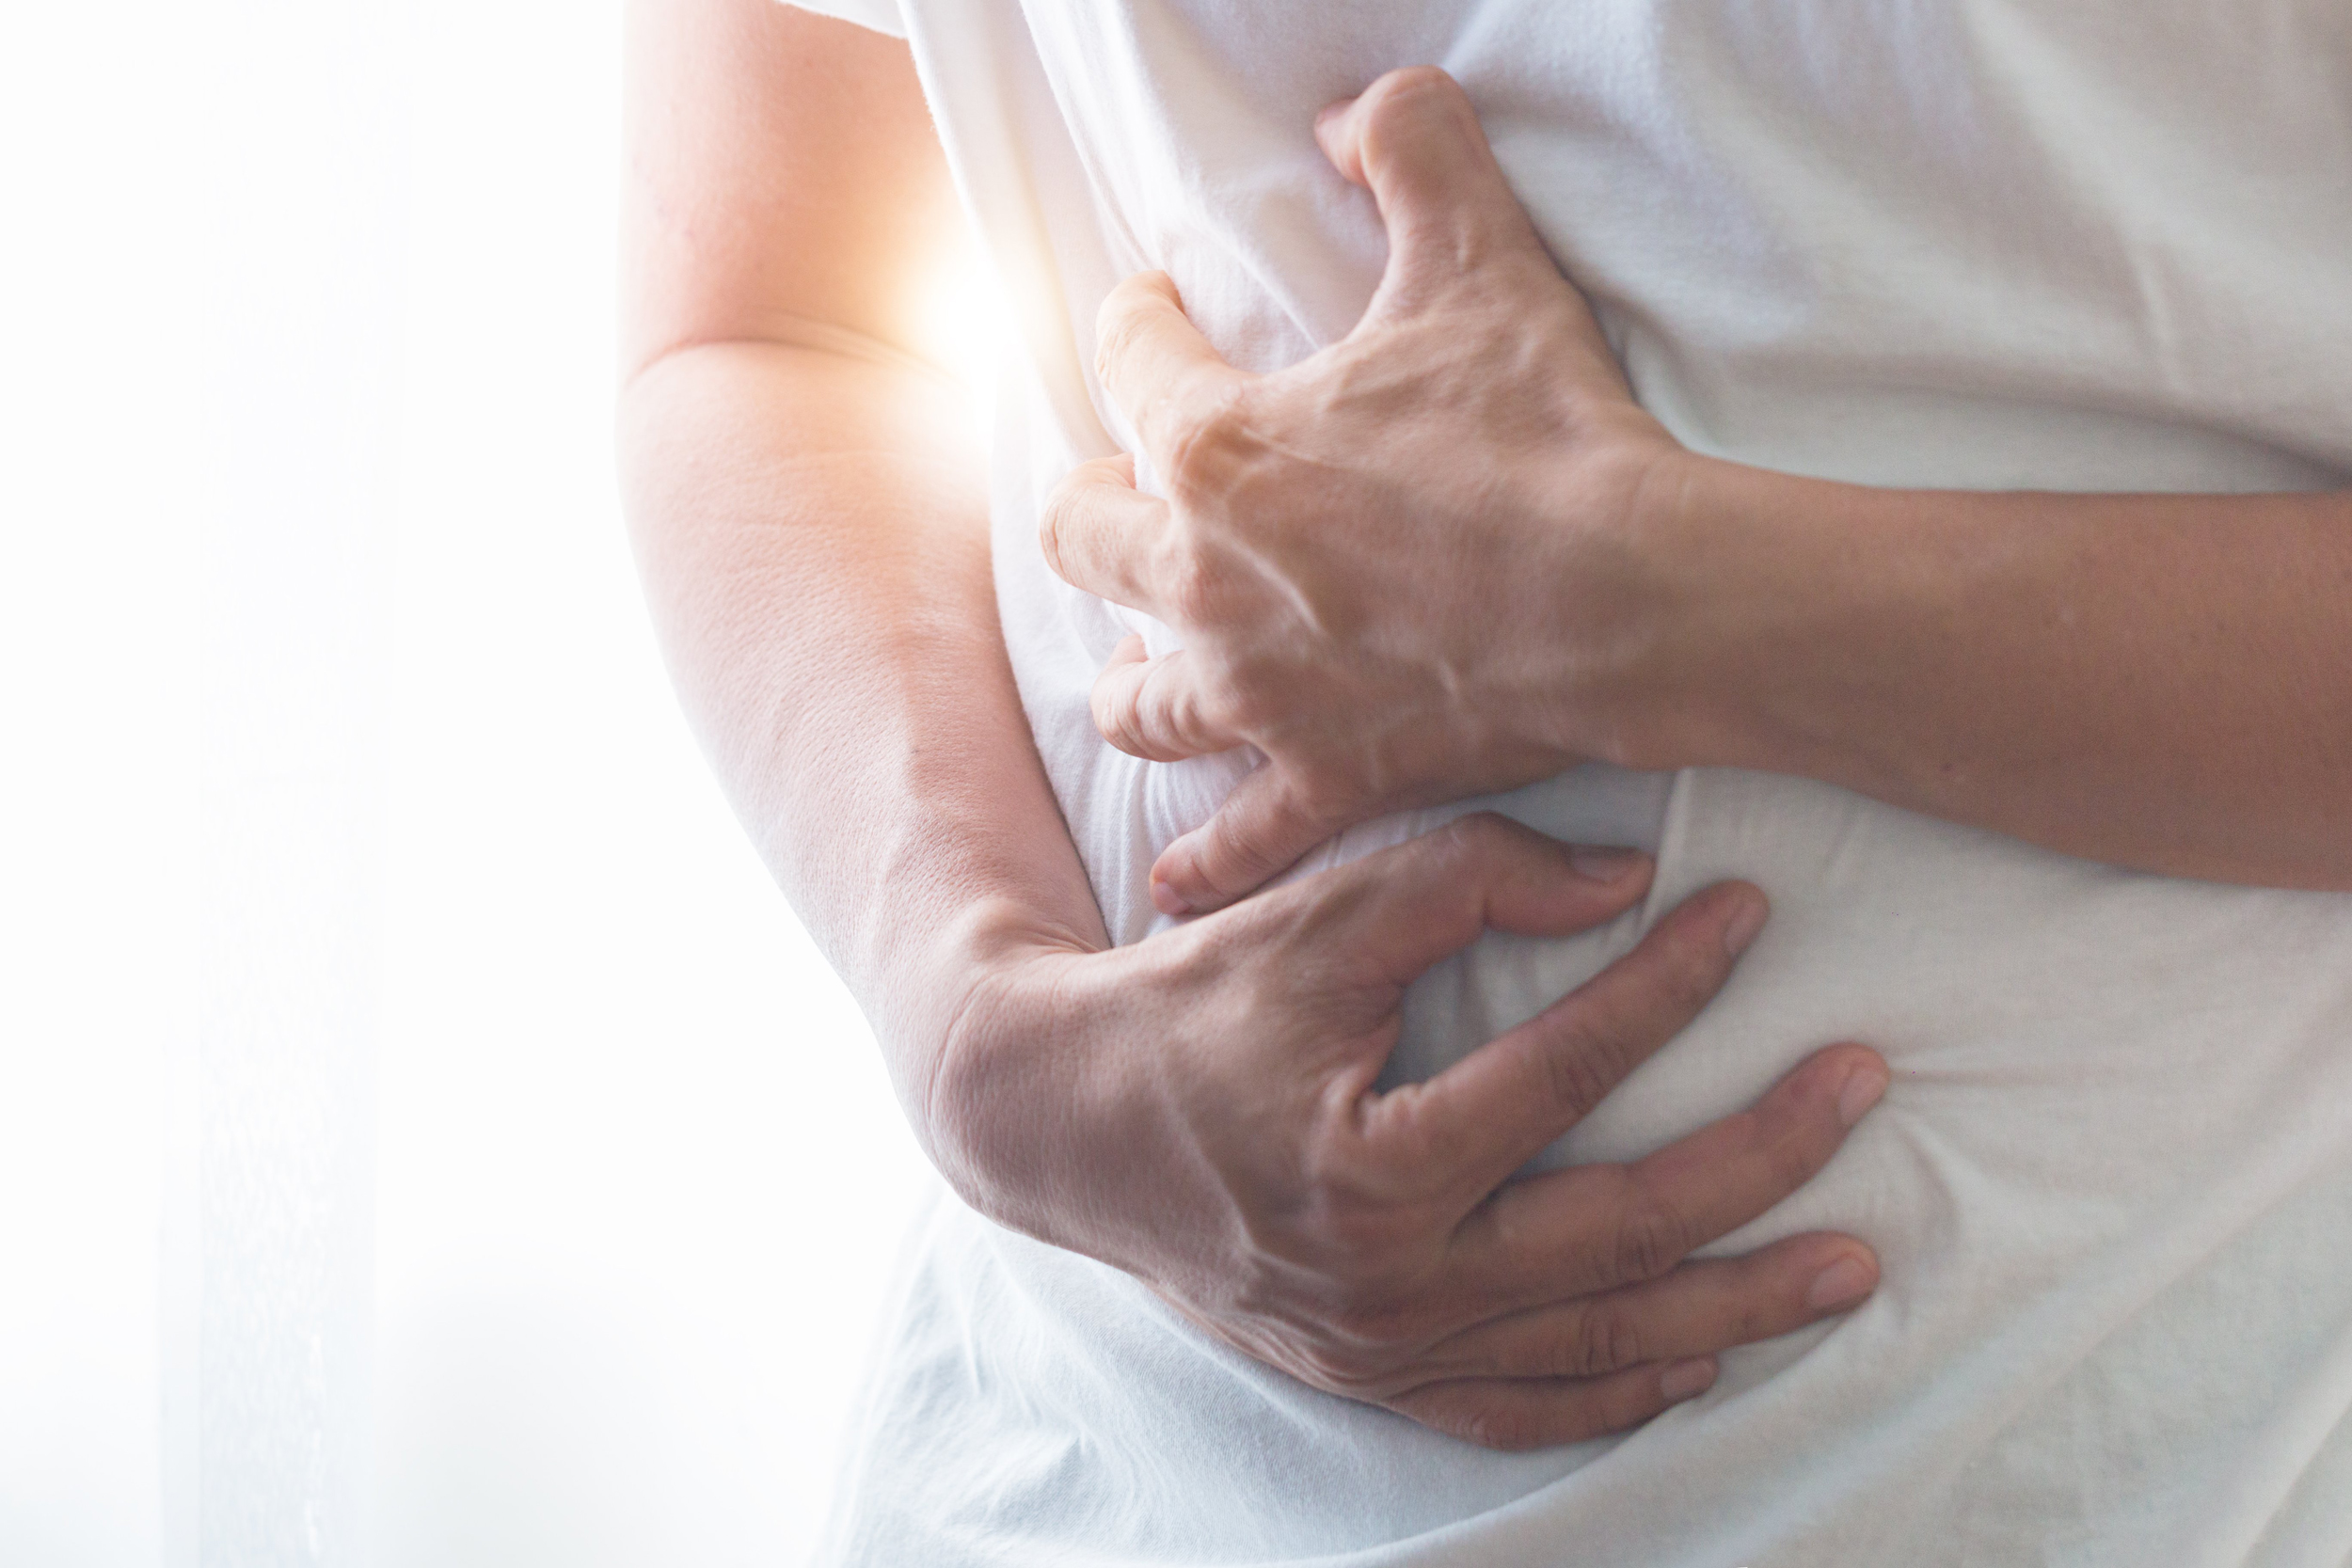 skipping surgery may not always be best for appendicitis